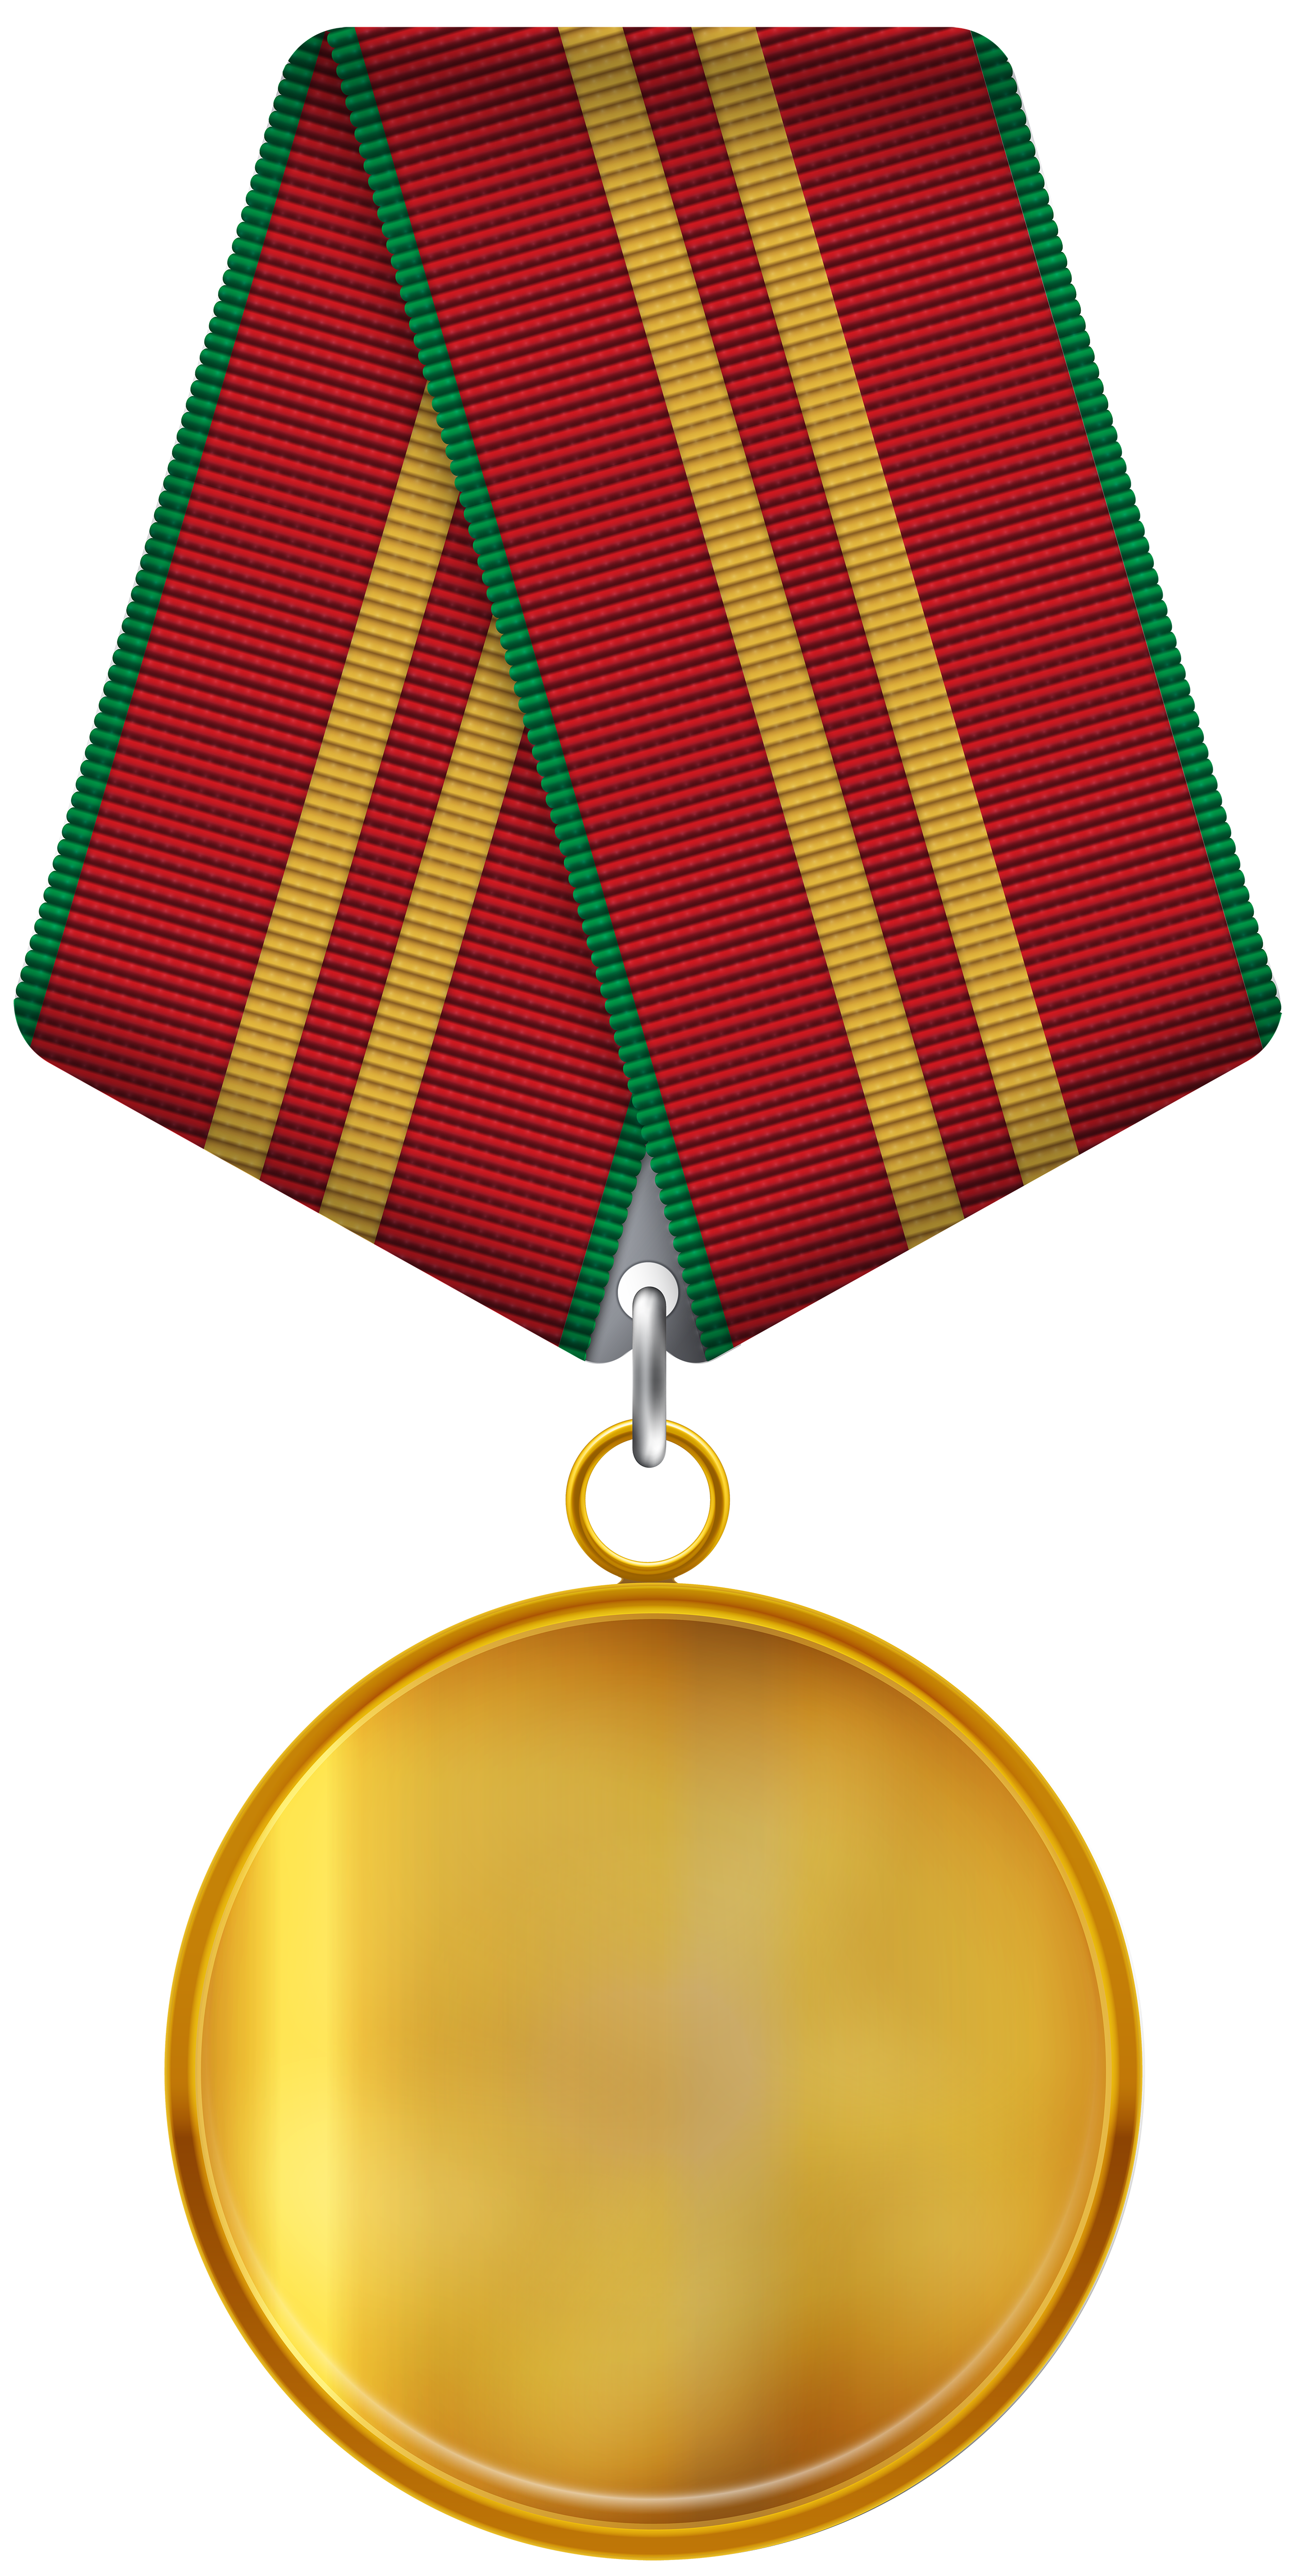 Free png clip art. Medal clipart